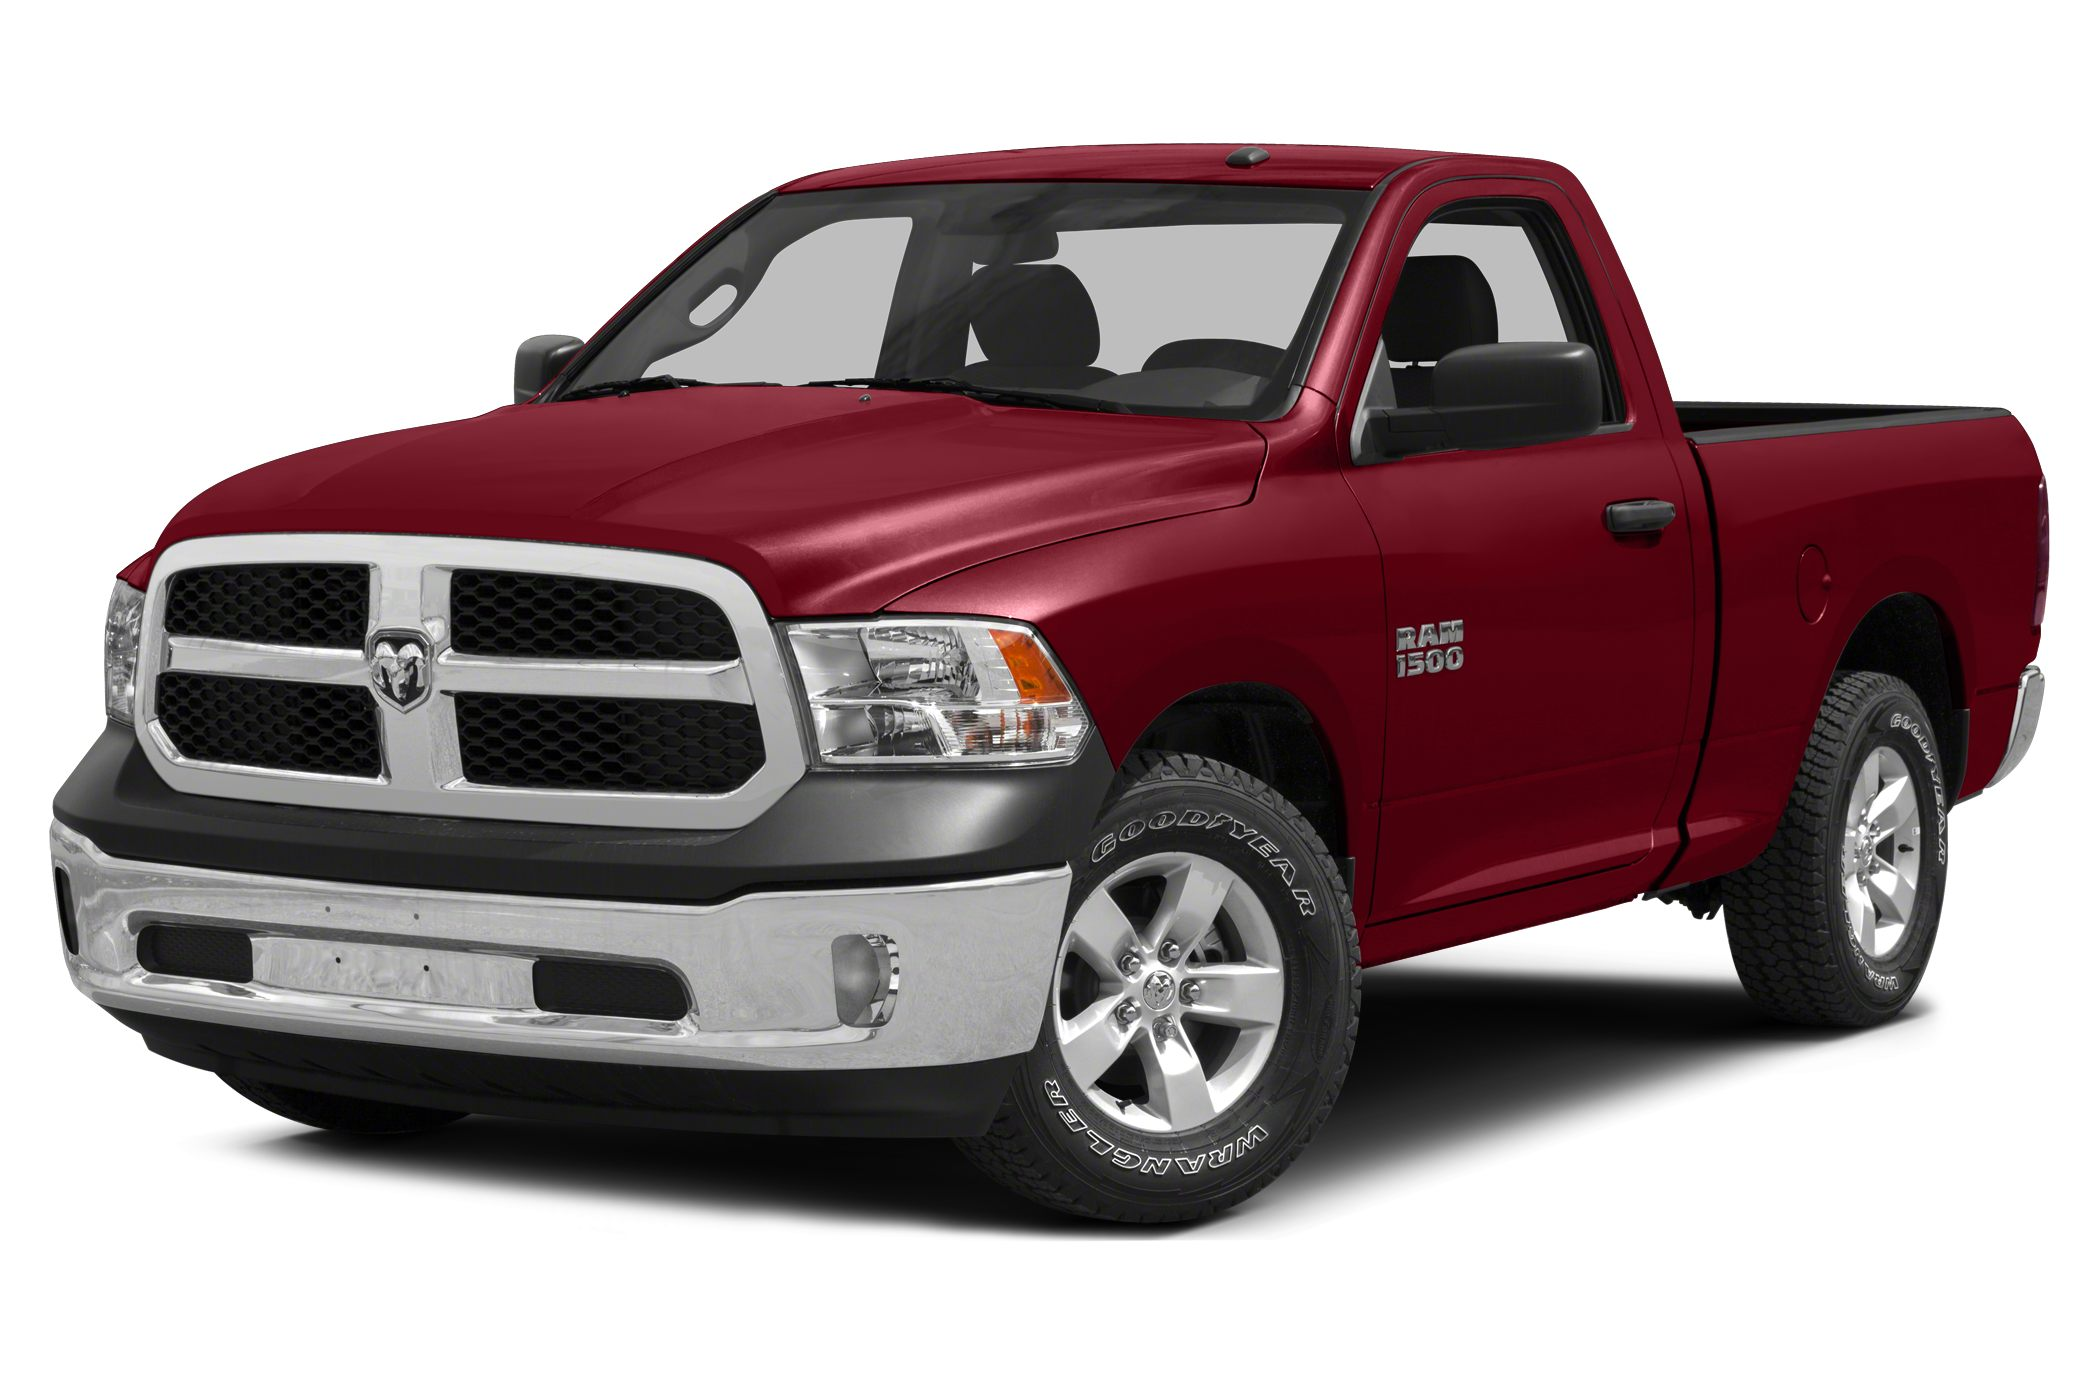 2015 RAM 1500 SLT Crew Cab Pickup for sale in Clintonville for $38,475 with 7 miles.